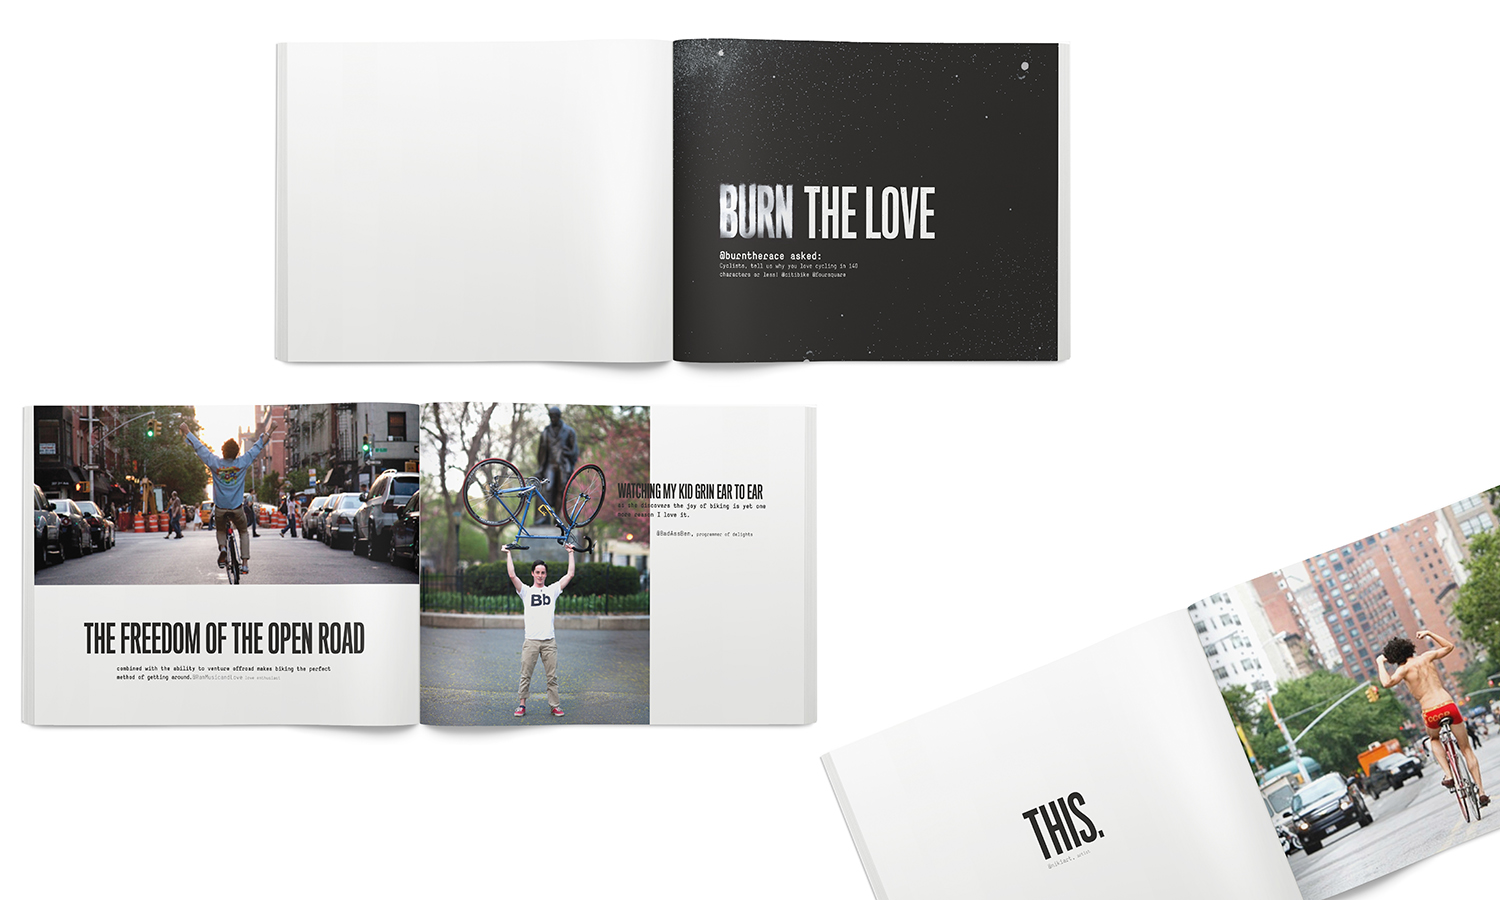 Editorial-style Event Book